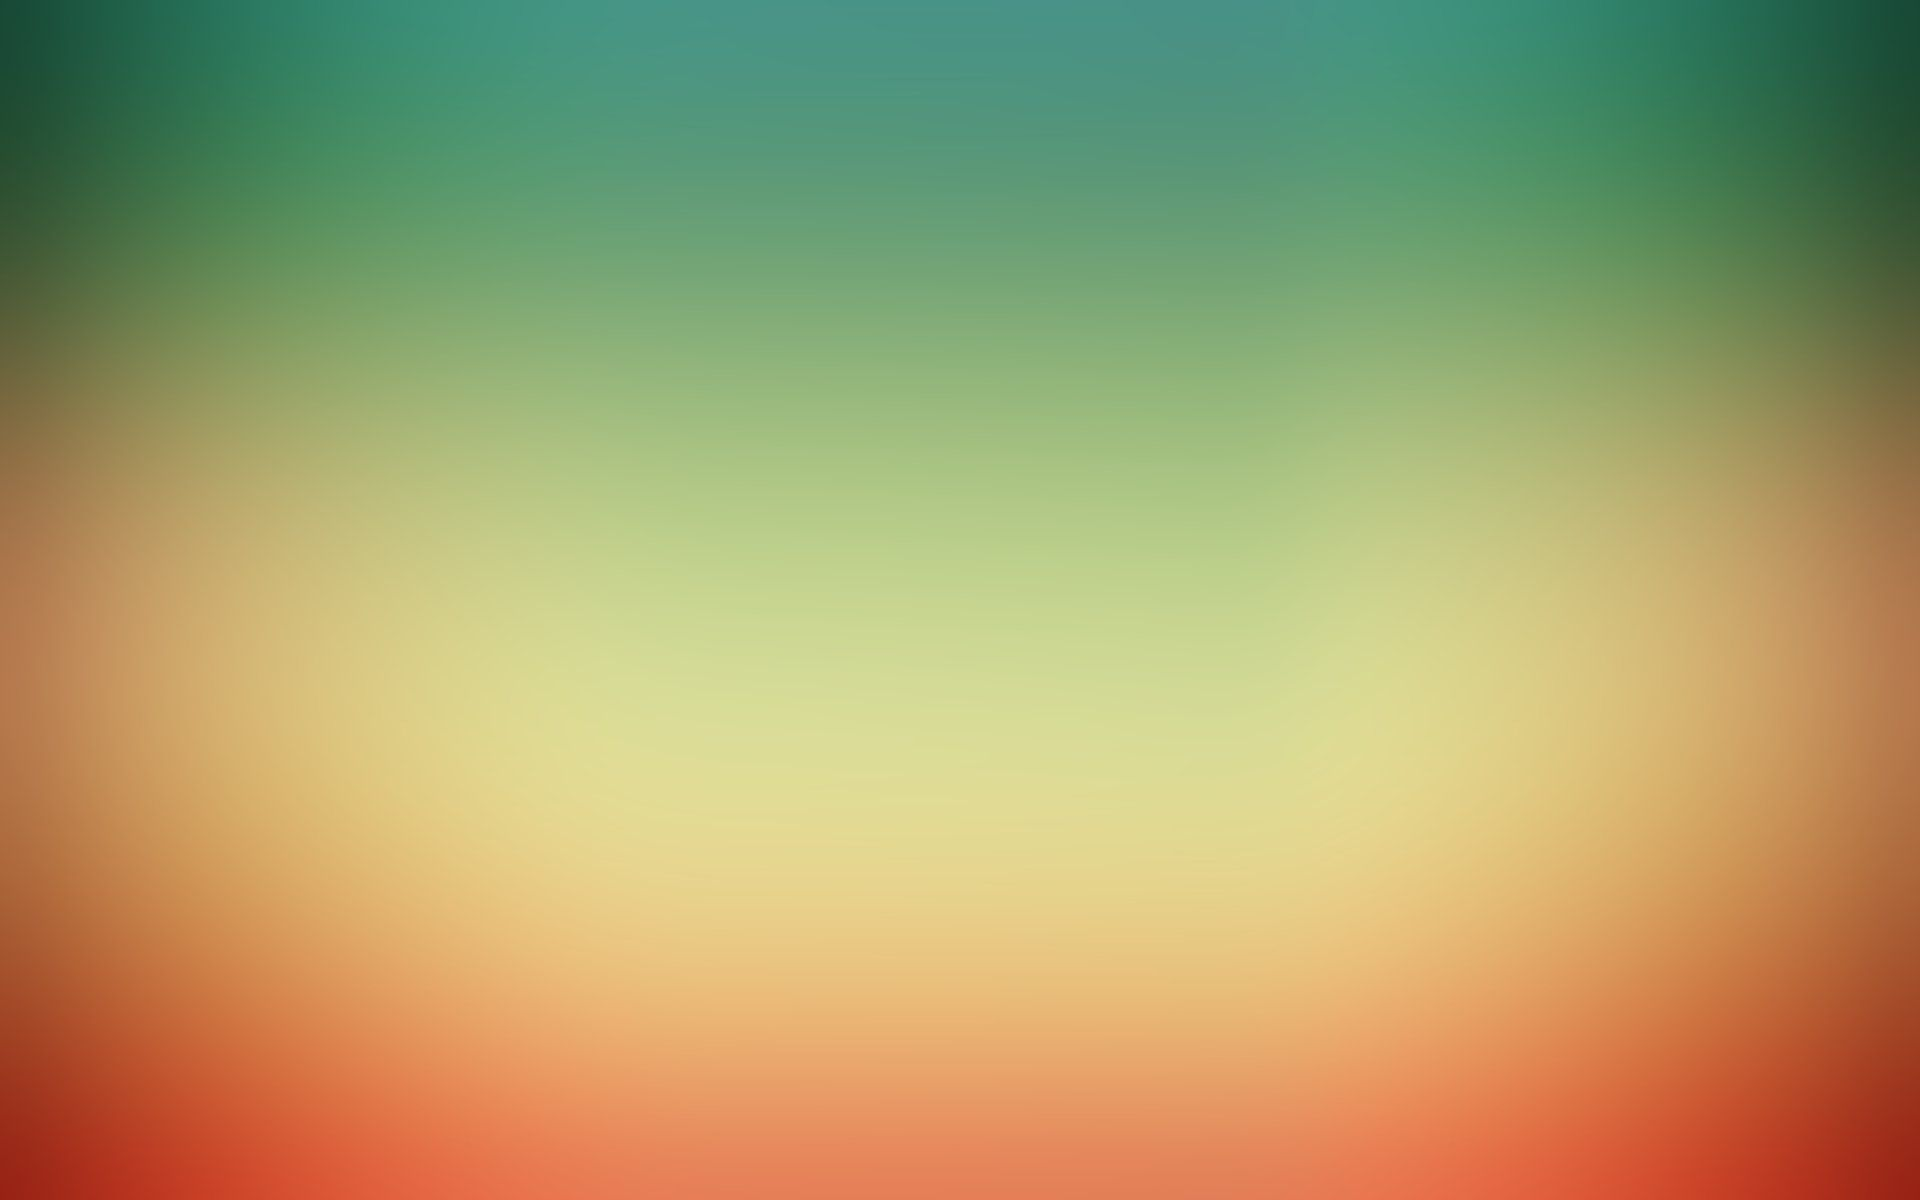 Abstract Wallpapers Imagepages Blank Images Jpg 19 10